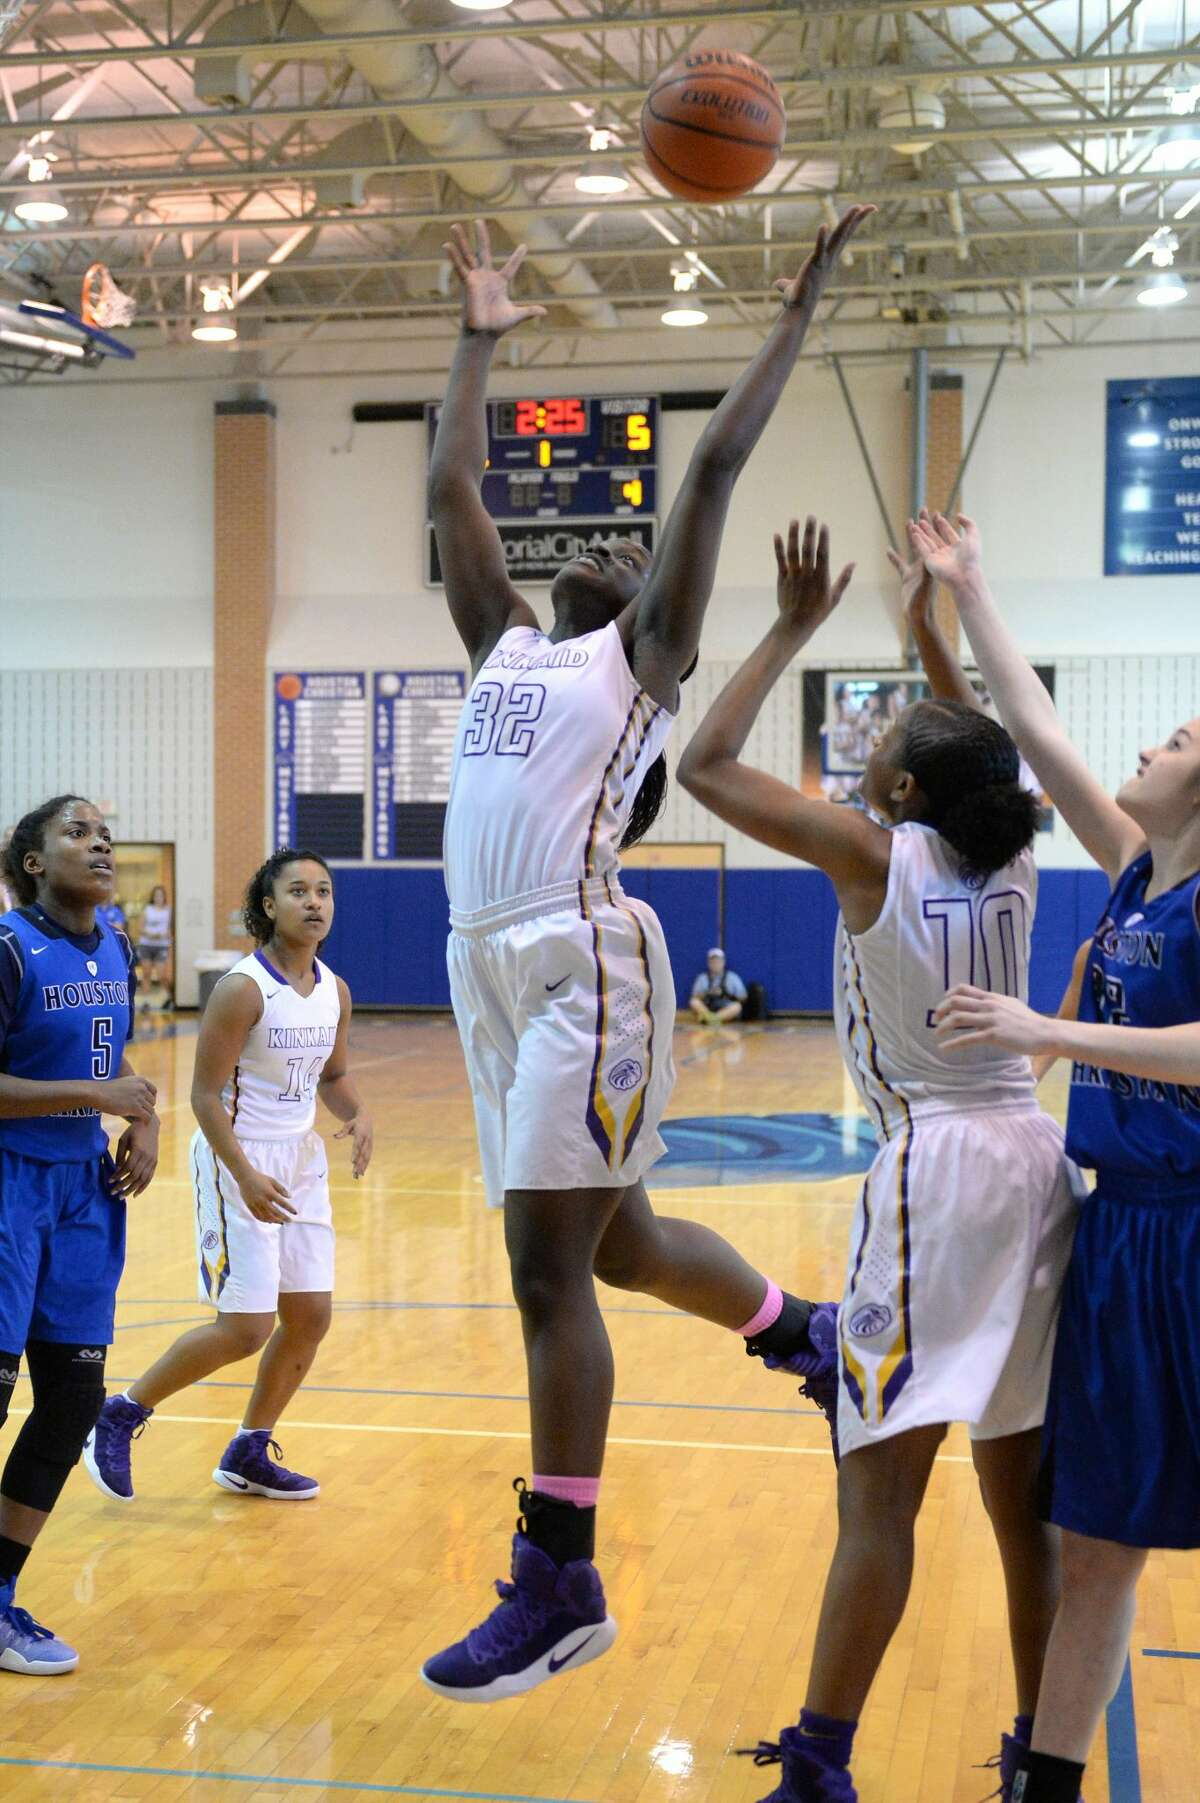 Chinaza Ndee (32) of Kinkaid grabs a rebound during the first half of the girls SPC Championship basketball game between the Kinkaid Falcons and the Houston Christian Mustangs on Saturday February 11, 2017 at Houston Christian High School, Houston, TX.